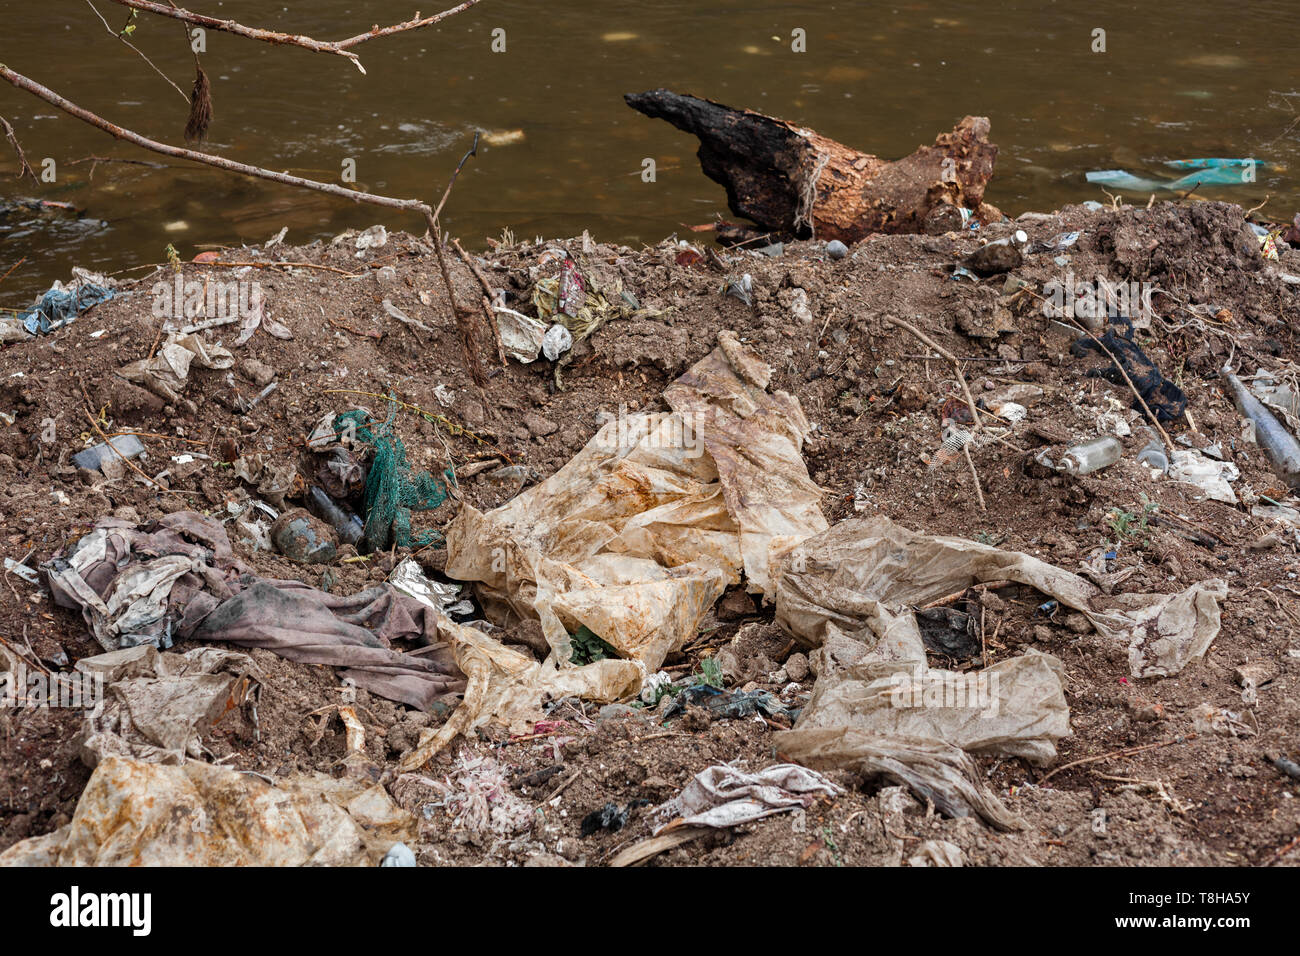 Plastic garbage fields on the bank of river in Ukraine. Ecological catastrophe on the riverside. - Stock Image